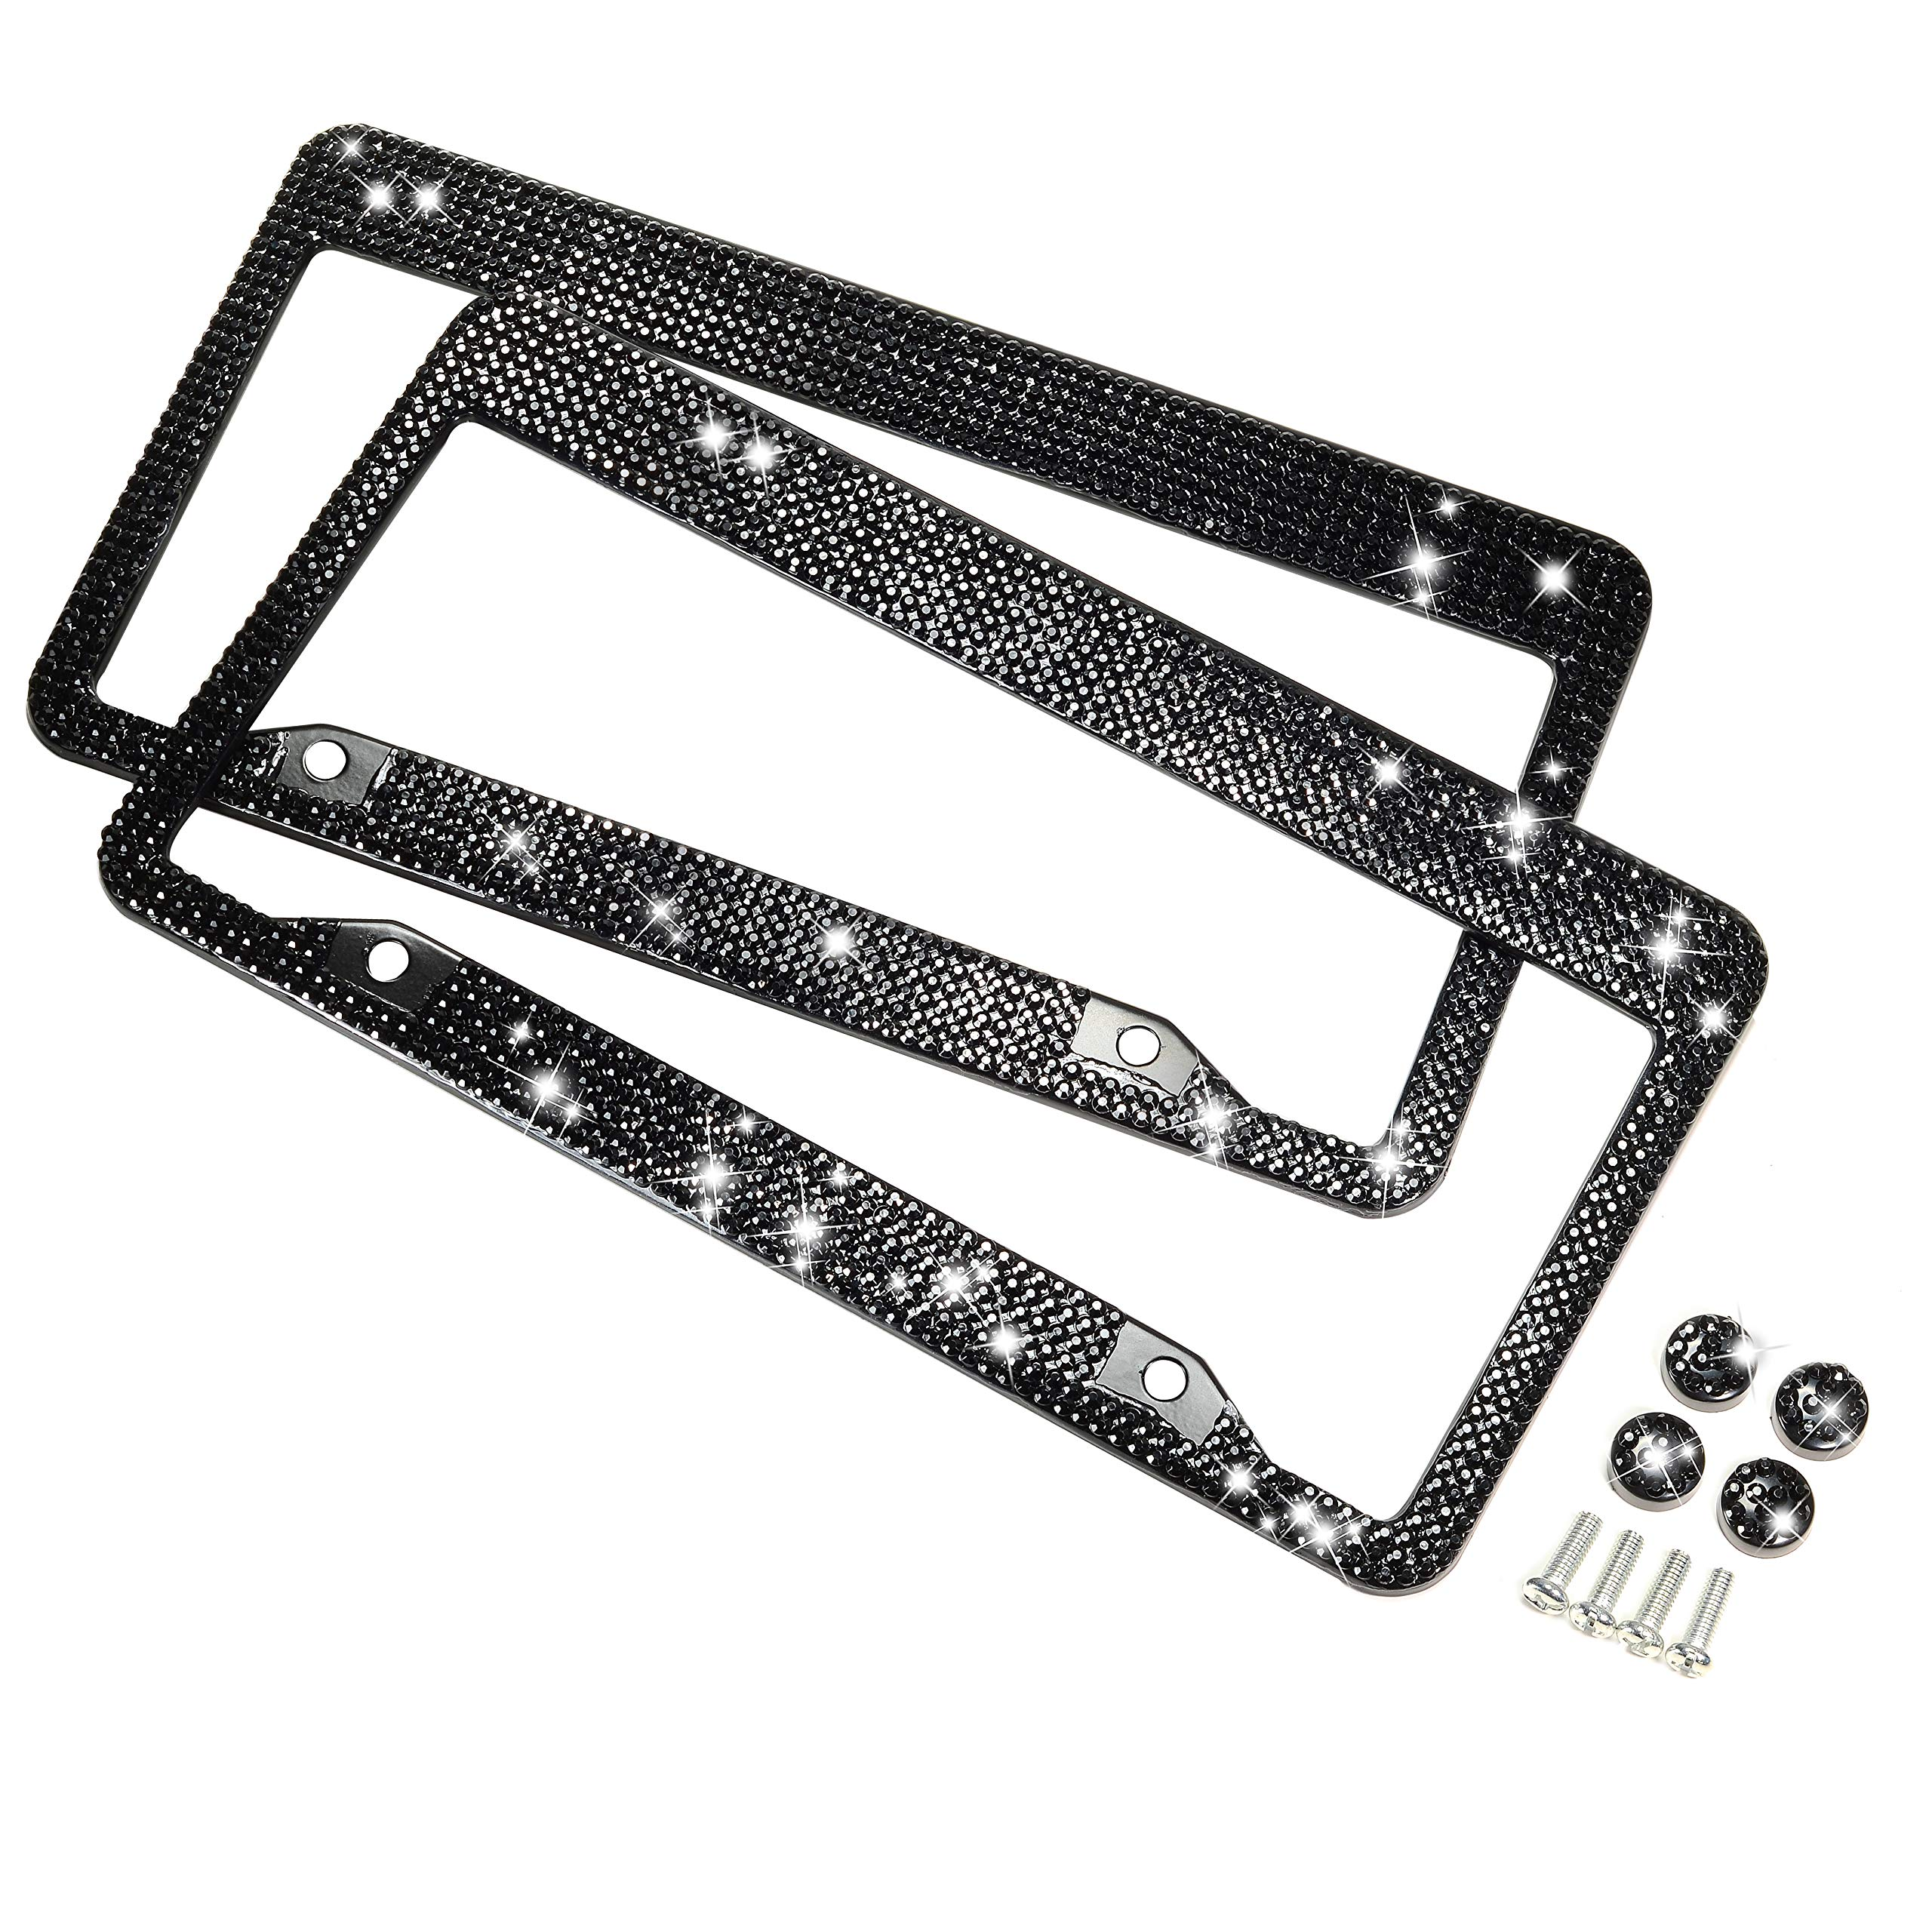 H C Hippo Creation 2 Pack Handcrafted Black Bling Crystal Premium Stainless Steel License Plate Frame